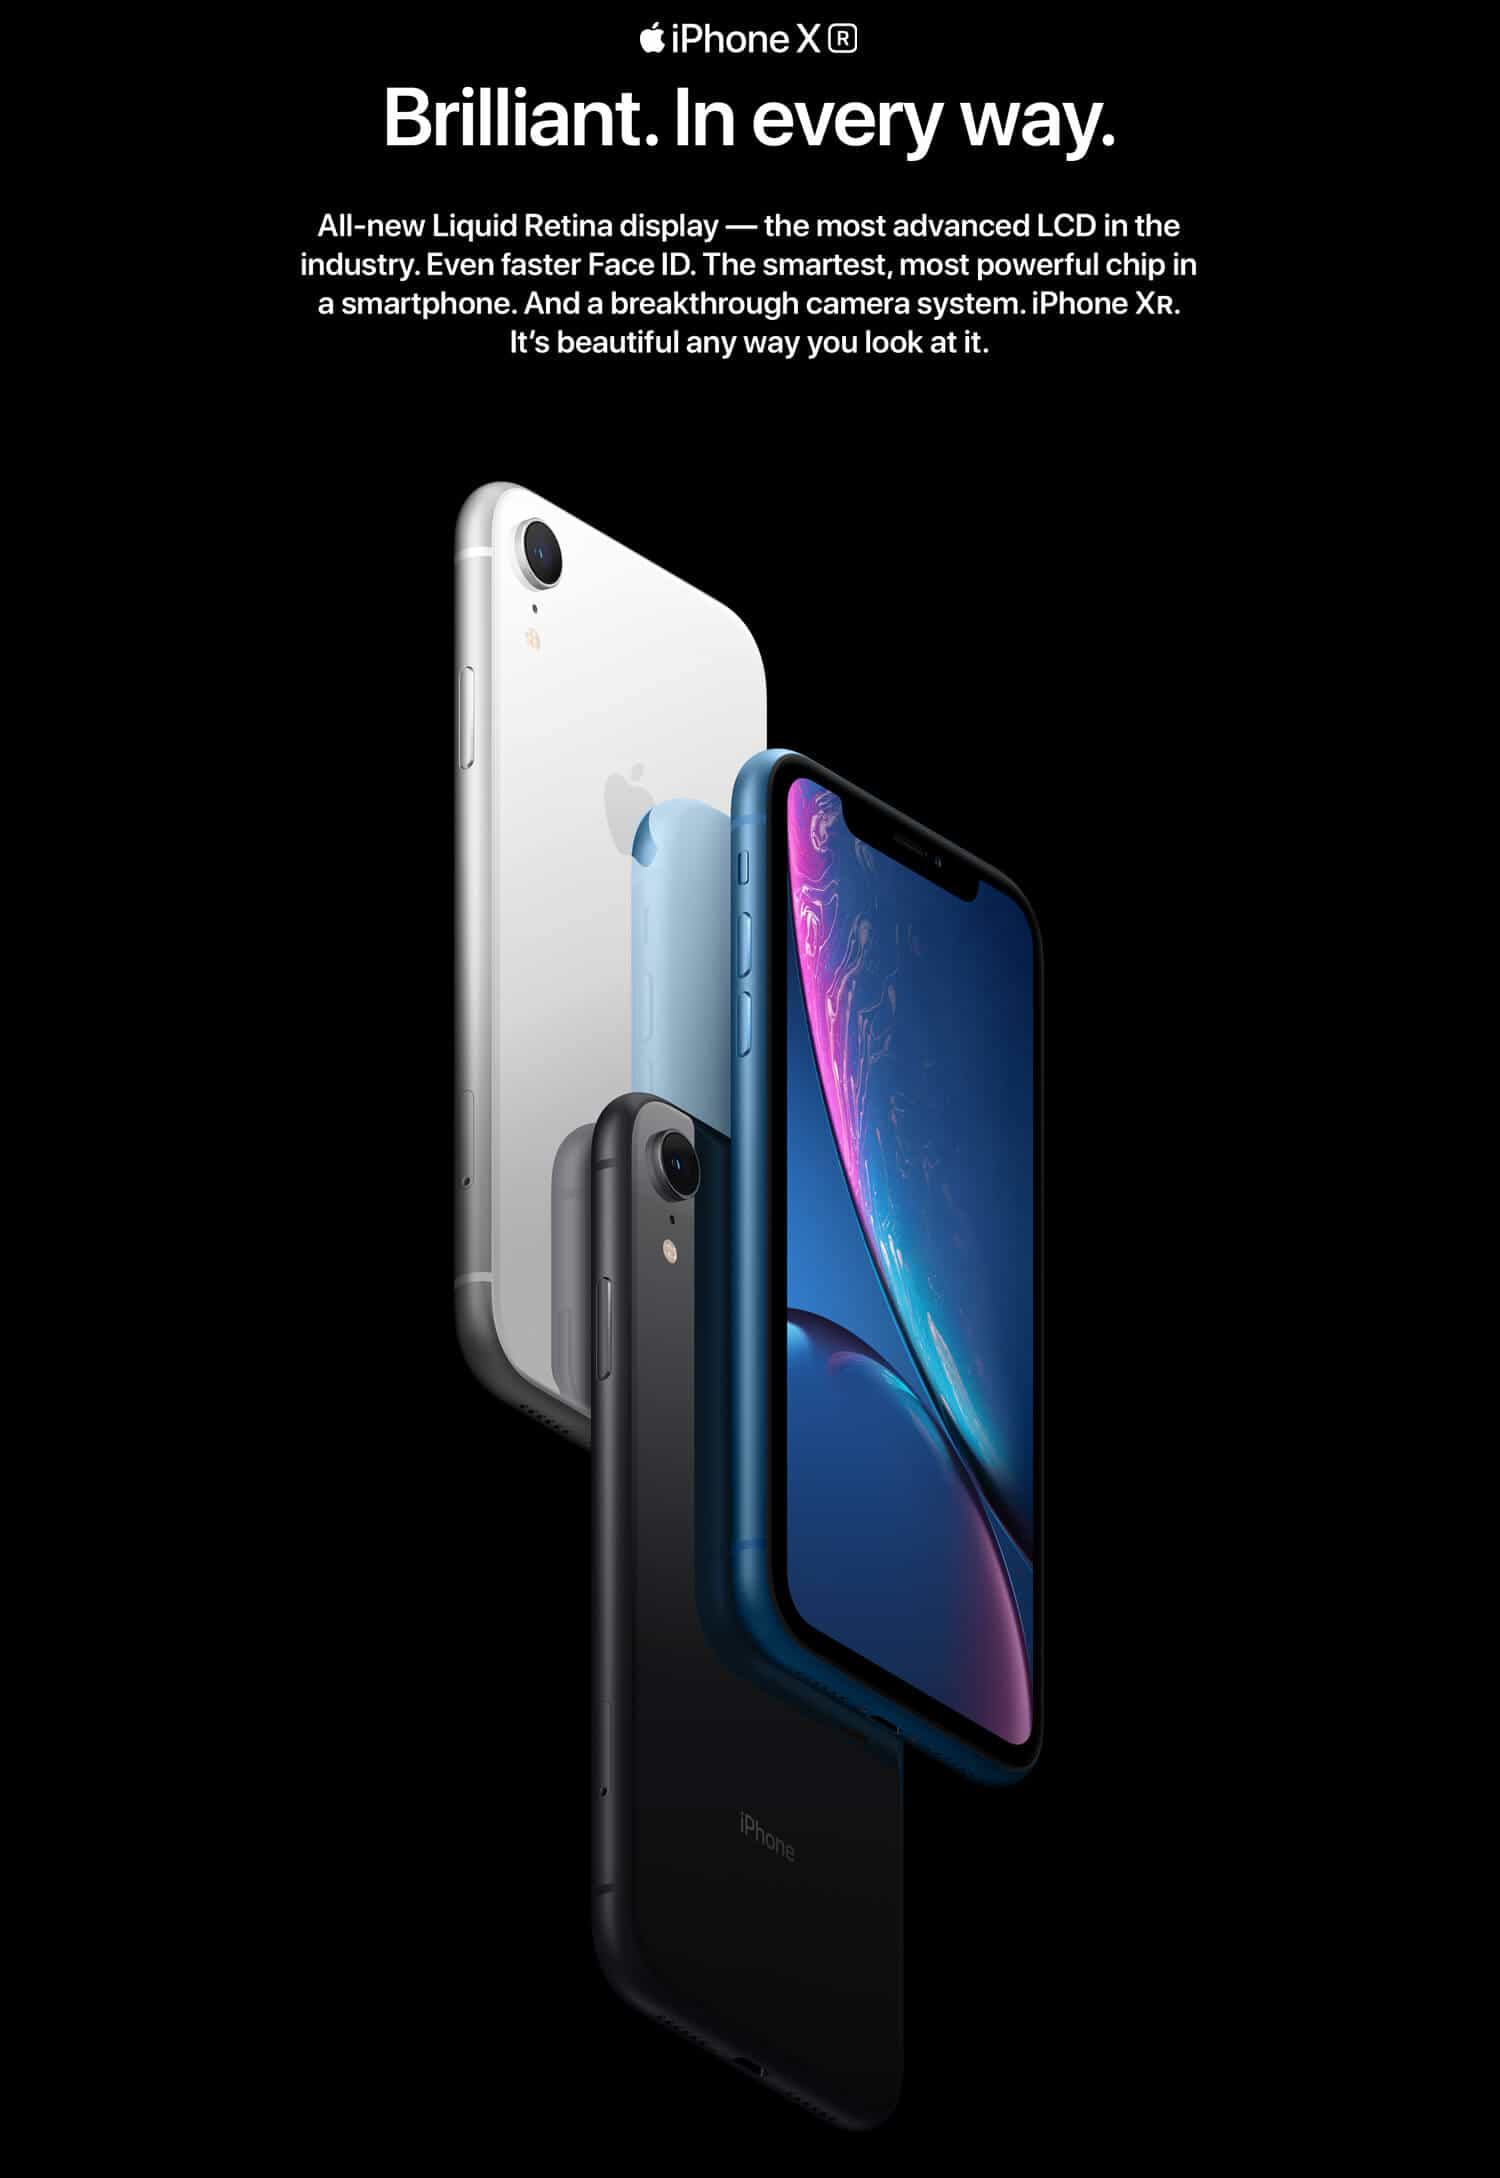 iPhone XR color black, white and blue